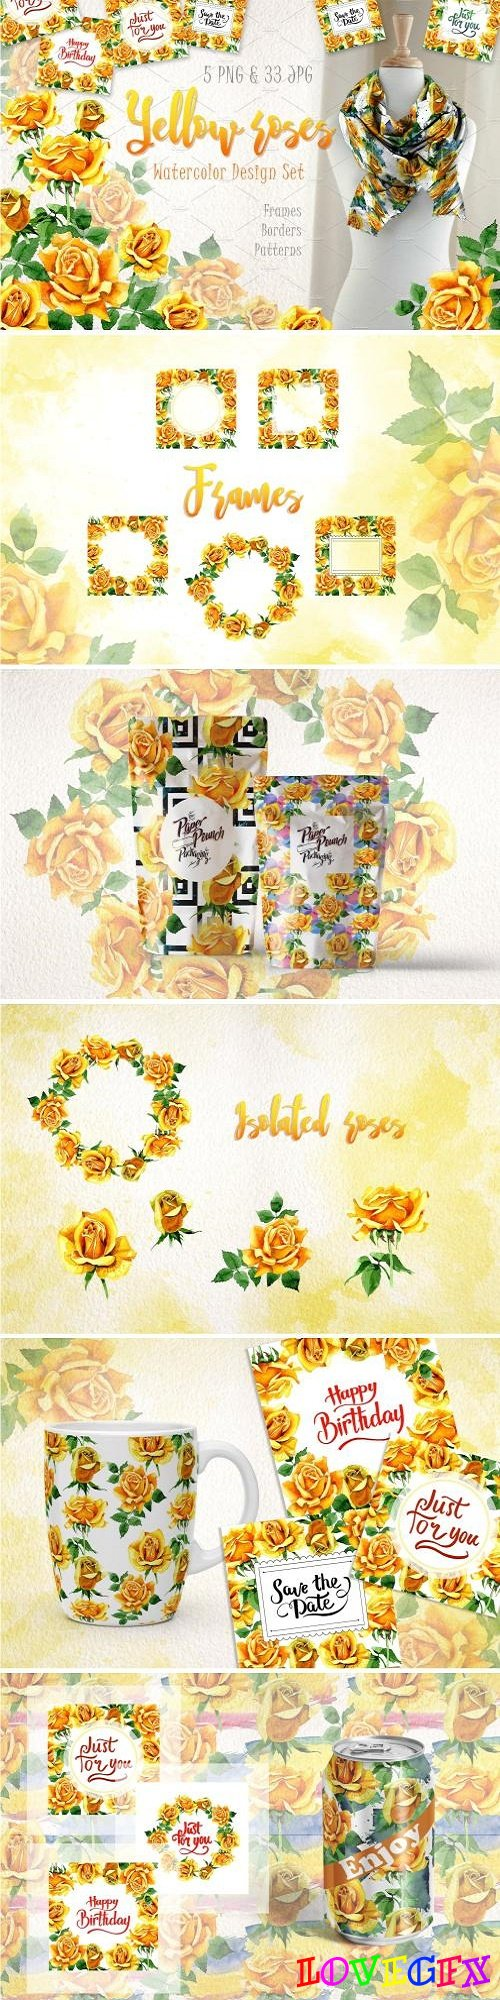 Yellow Roses PNG watercolor set 2888879